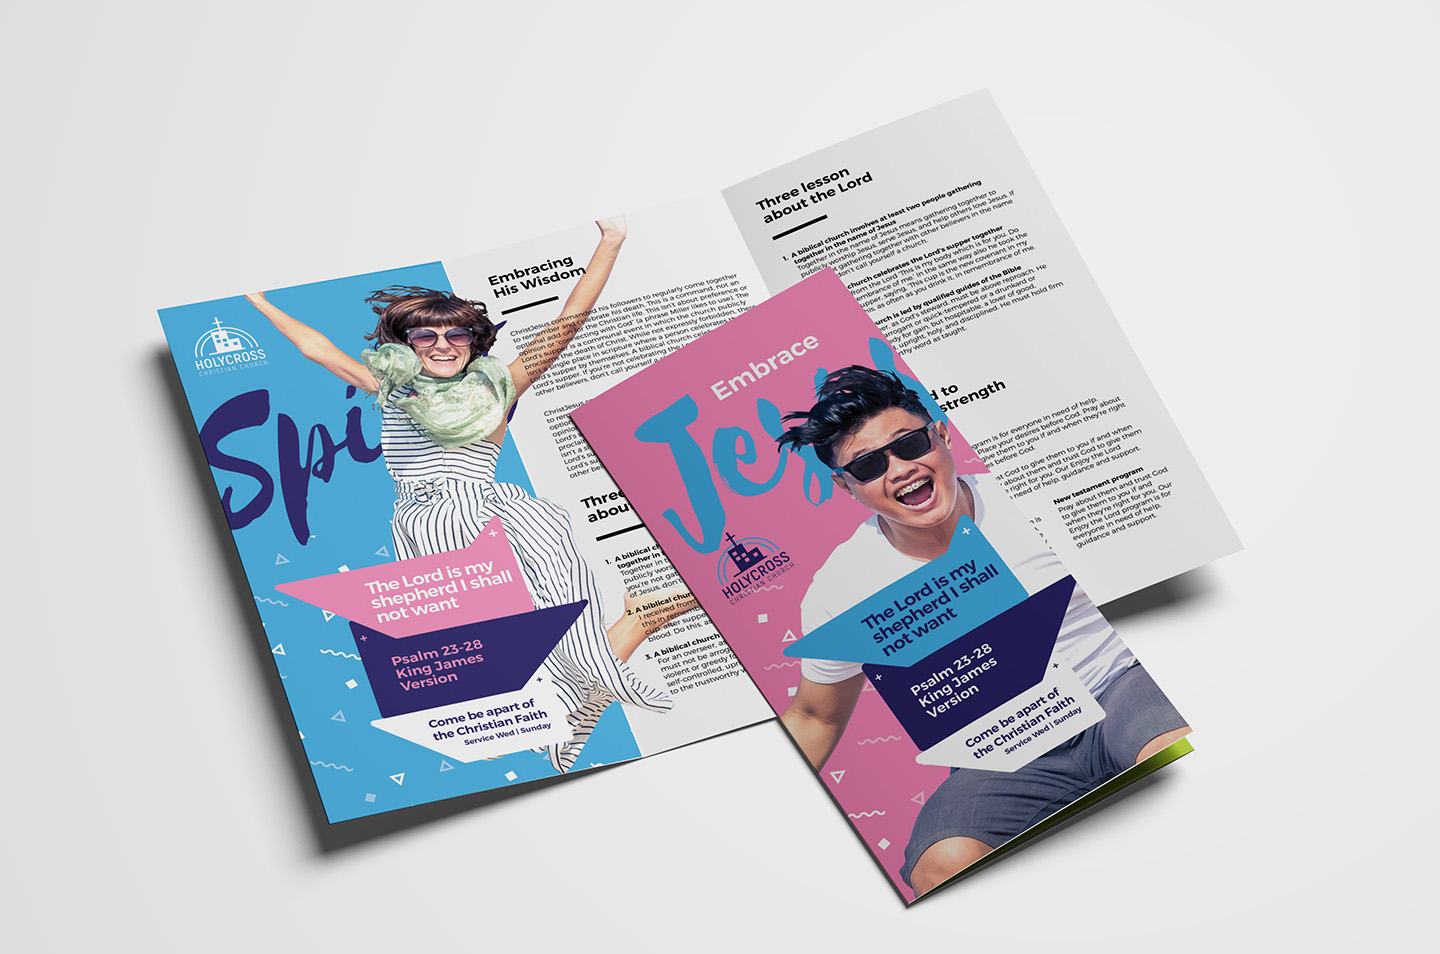 Easter Service Tri-Fold Brochure Template example image 1